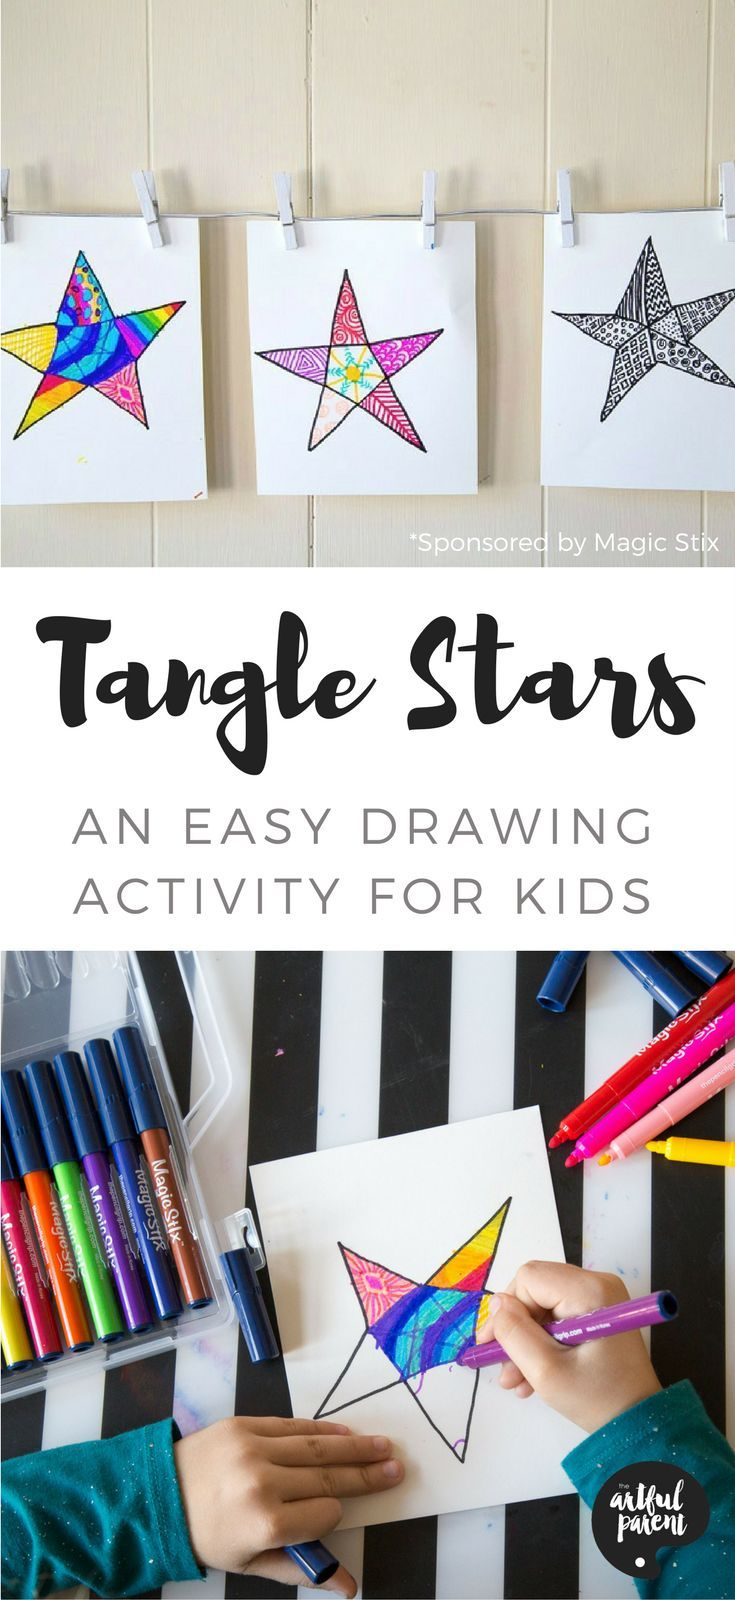 We used magic stix to make tangle stars, a fun and easy drawing activity for kids. Here's a tangle star printable activity & a review of Magic Stix markers.